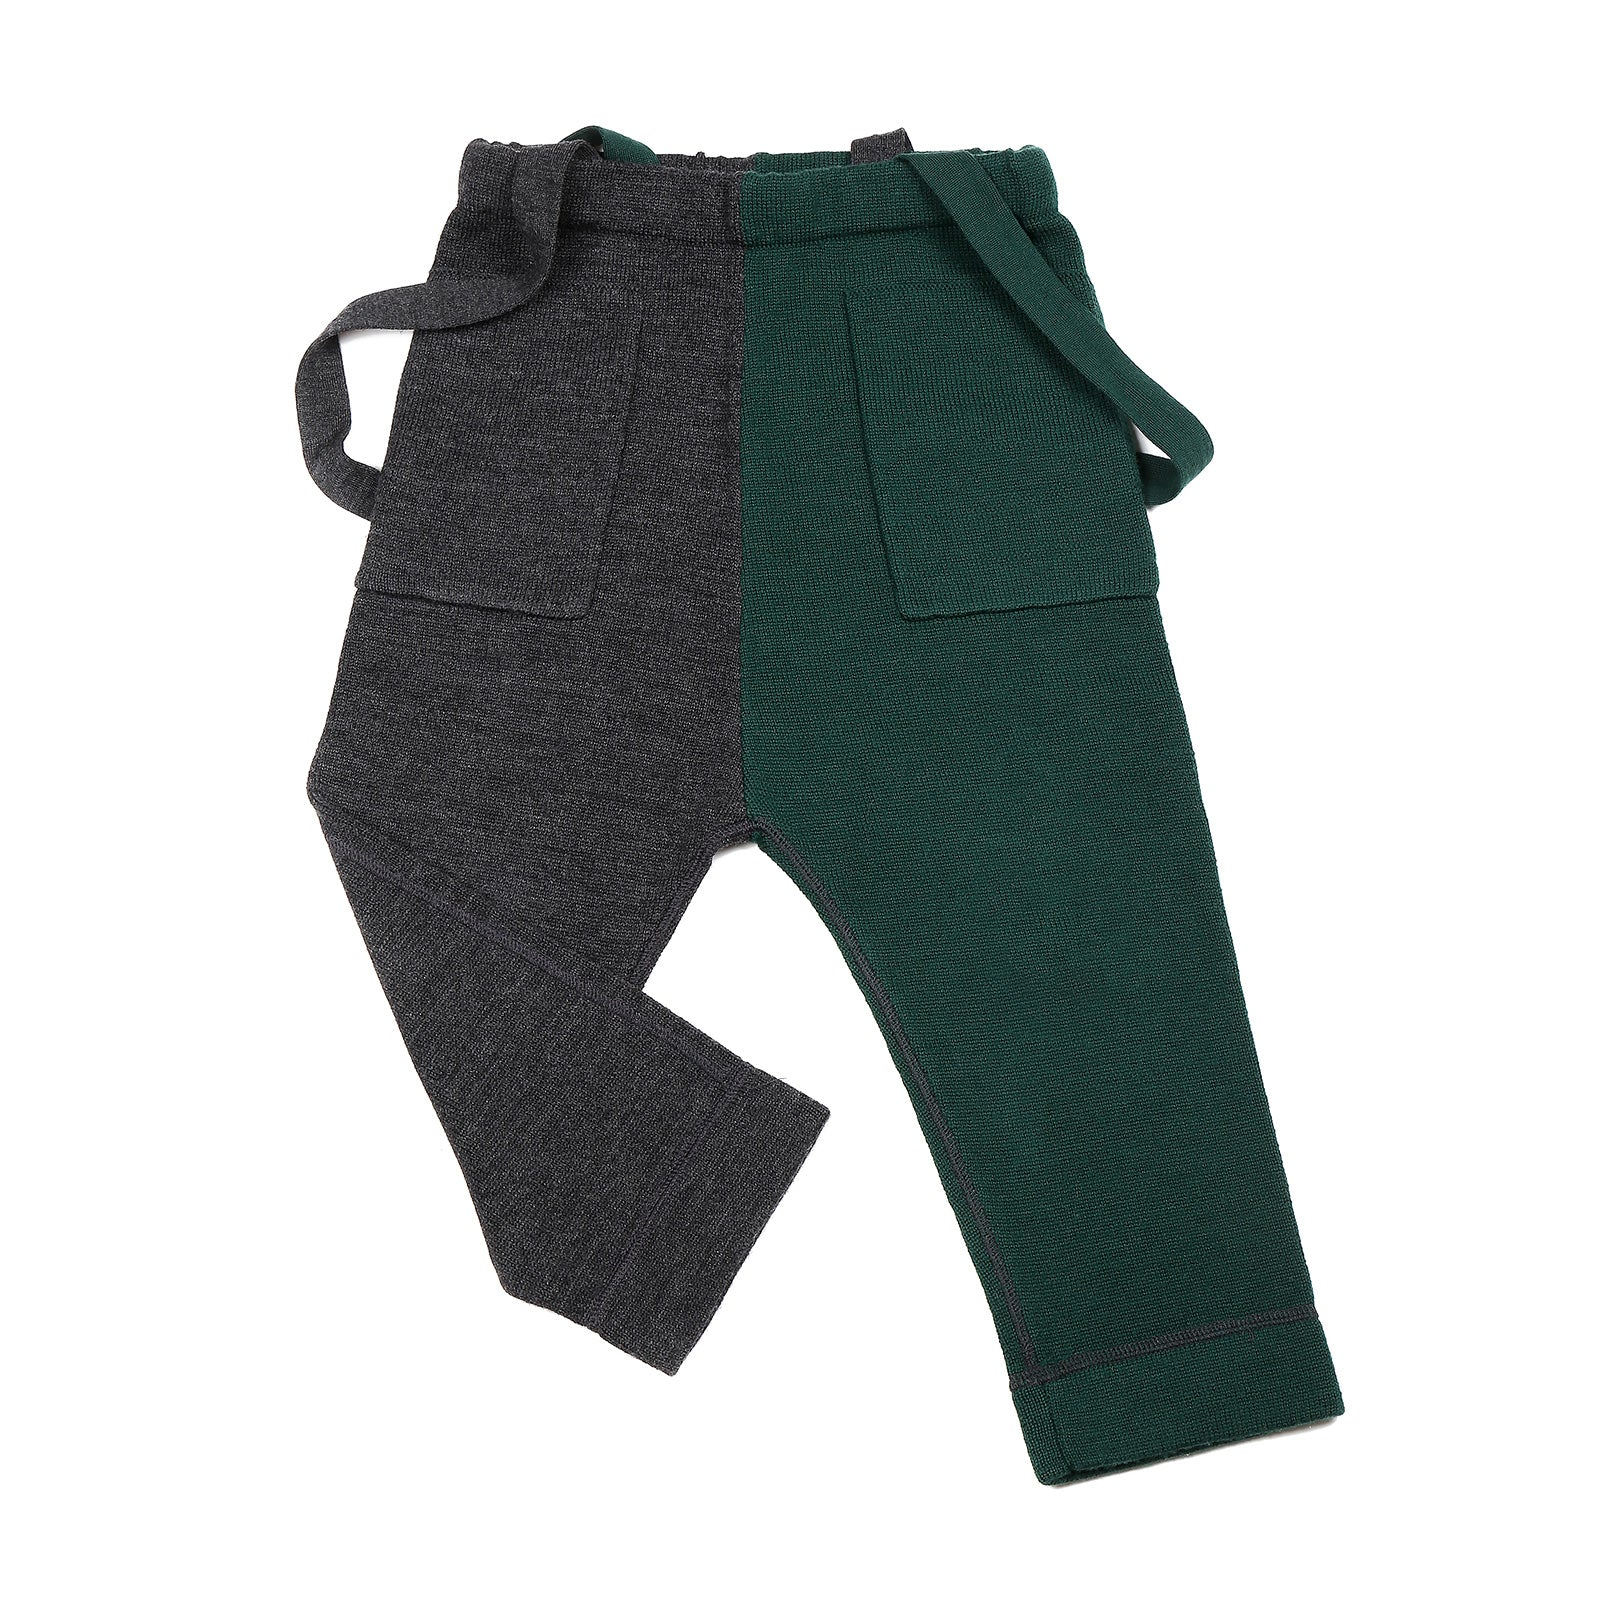 Merino Wool Smart Trousers from Knit Planet